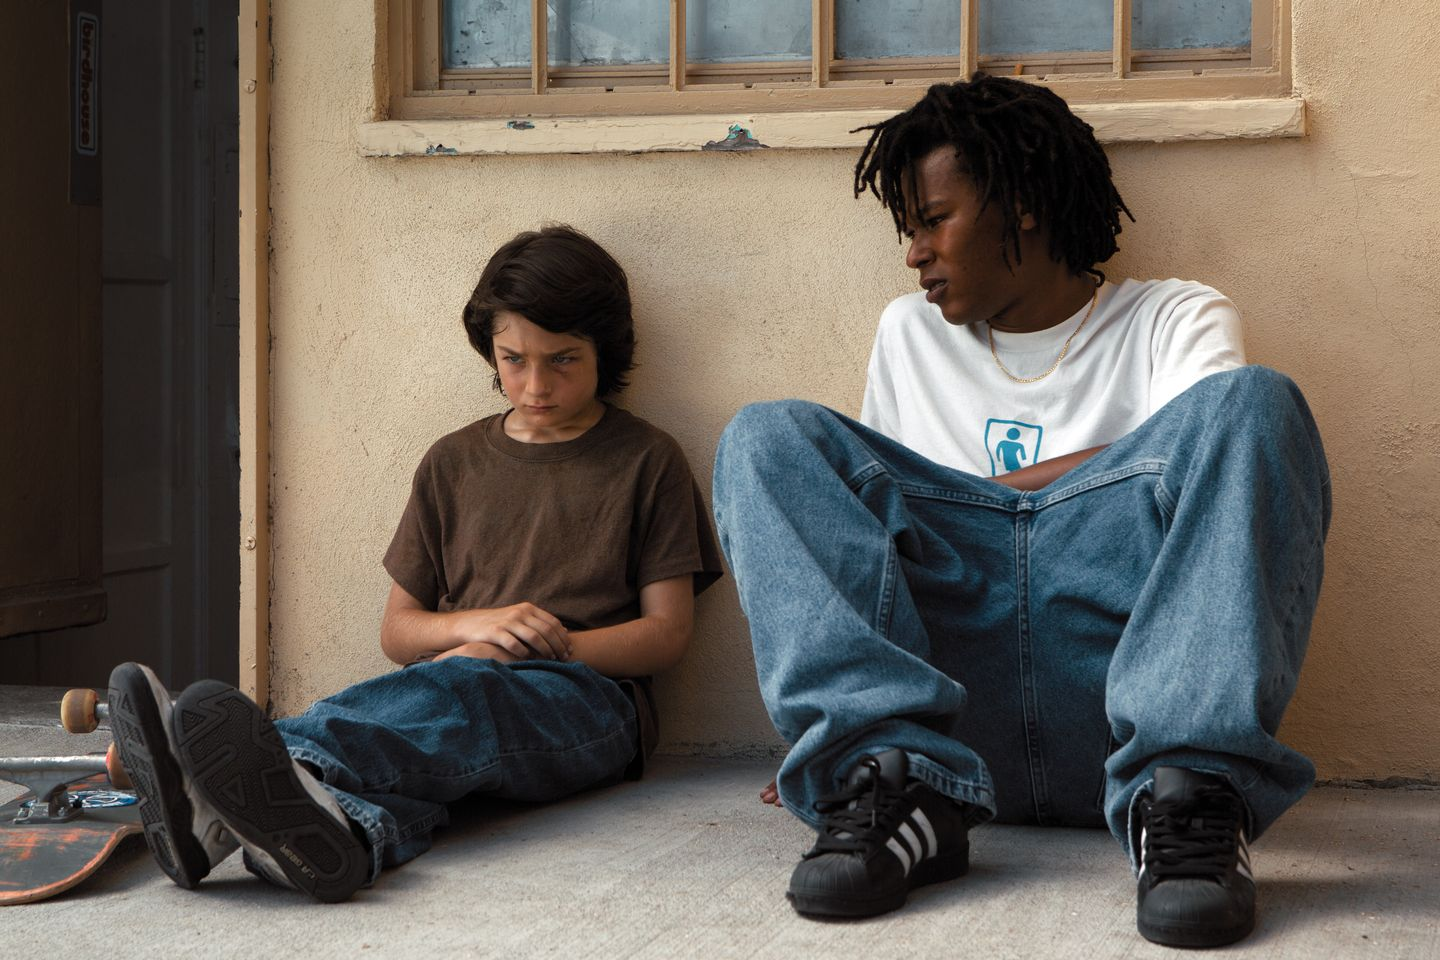 c1e0fc48a22185 Mid90s is a 2018 American coming-of-age comedy-drama film written and  directed by Jonah Hill